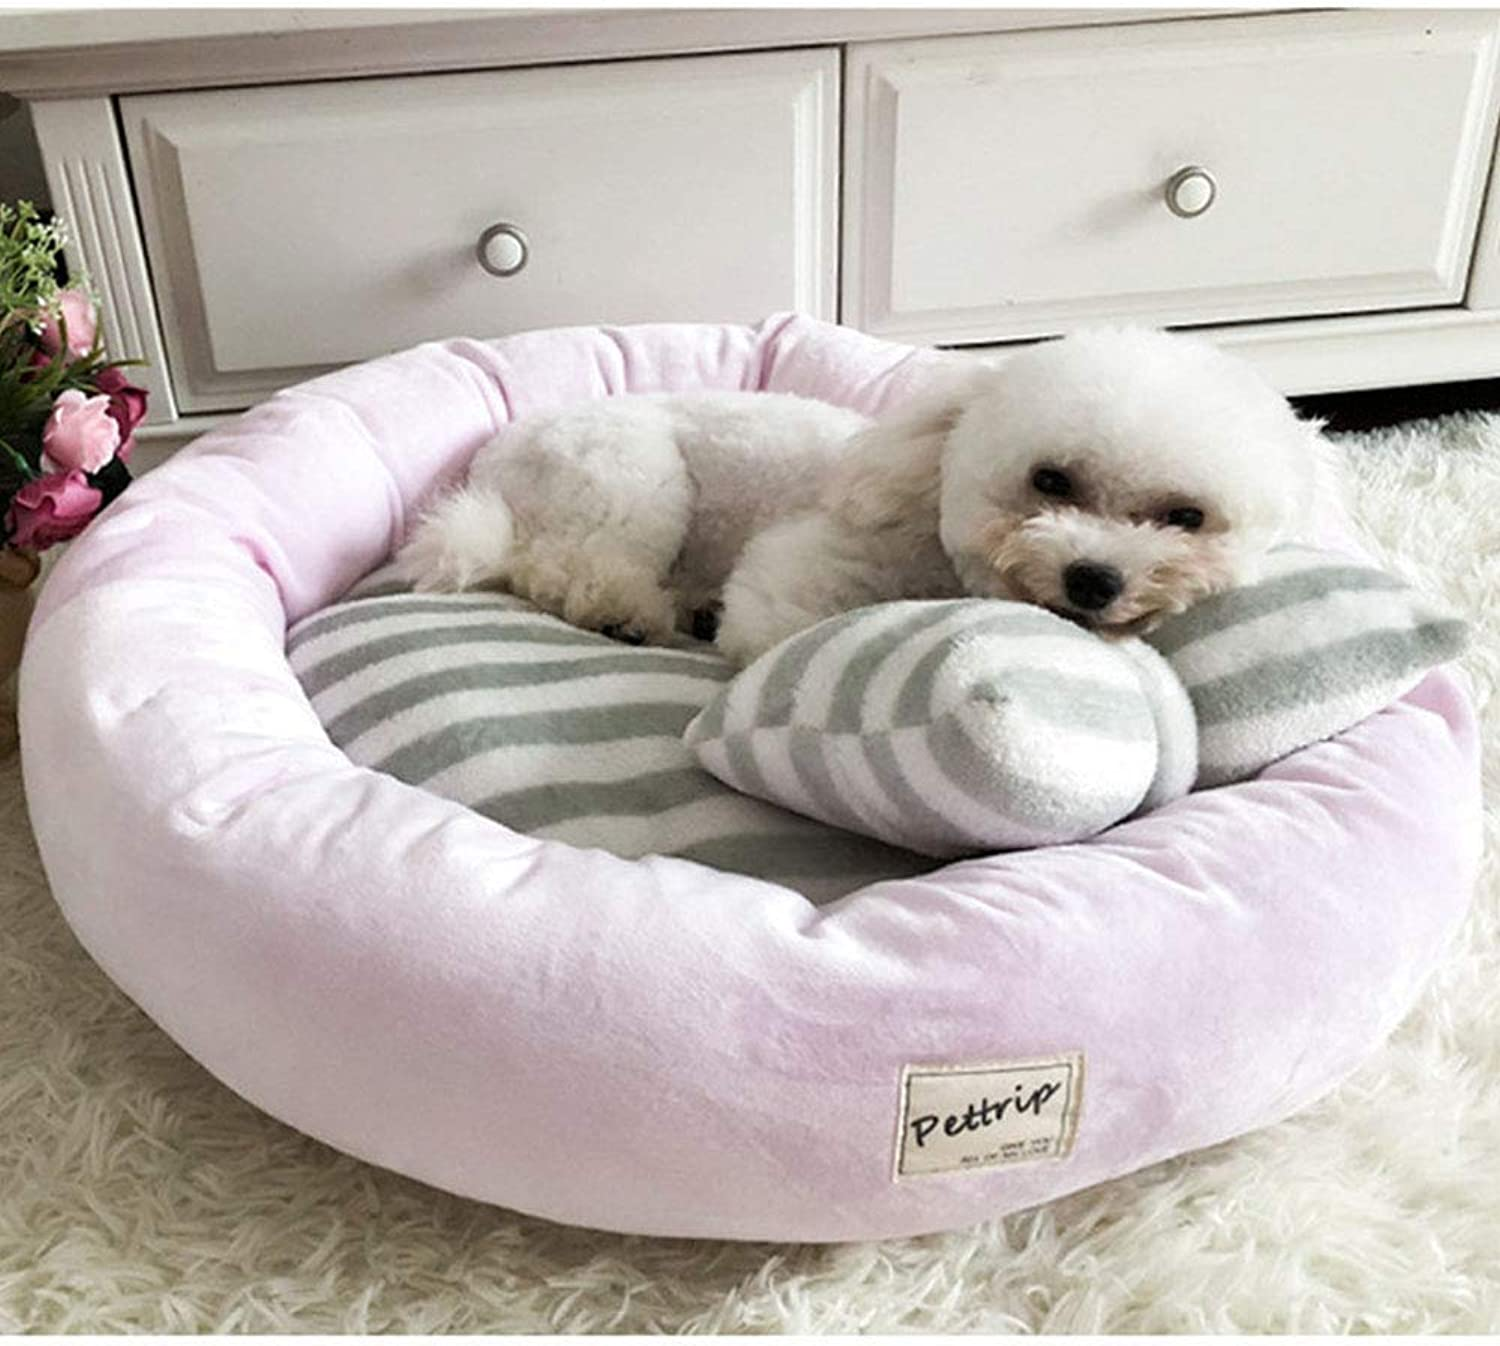 Pet Dog Bed Mats Round, Puppy Pads Warm Velvet Soft Lounger Sofa for Kitten Puppy with Pillow Four Seasons Universal,Pink,L